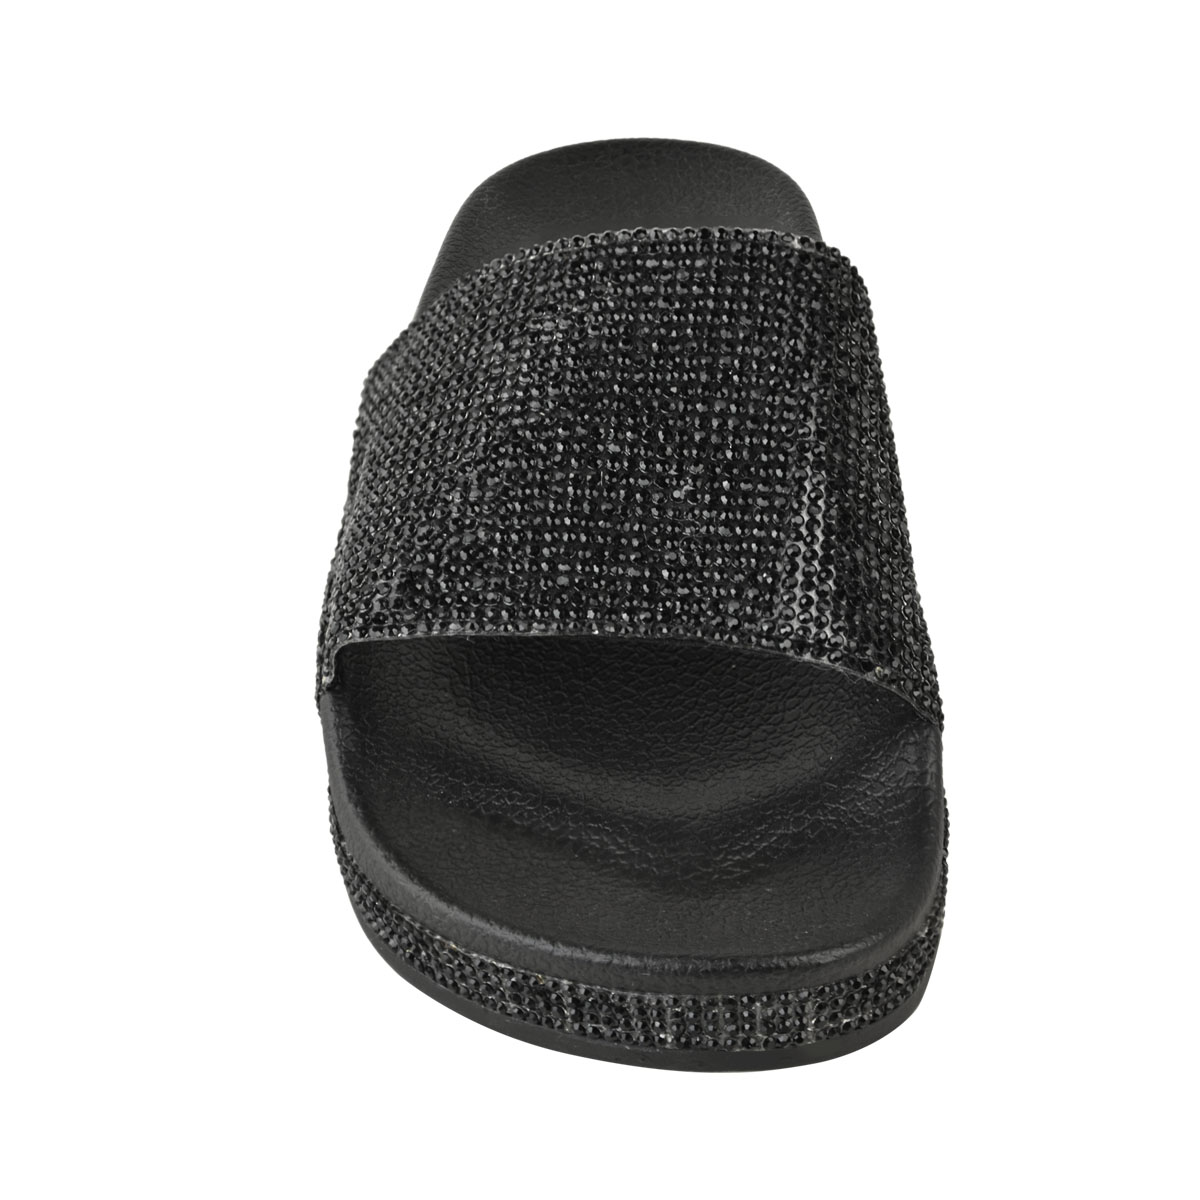 Womens-Ladies-Flat-Slides-Sandals-Diamante-Sparkly-Sliders-Slippers-Shoes-Size thumbnail 5